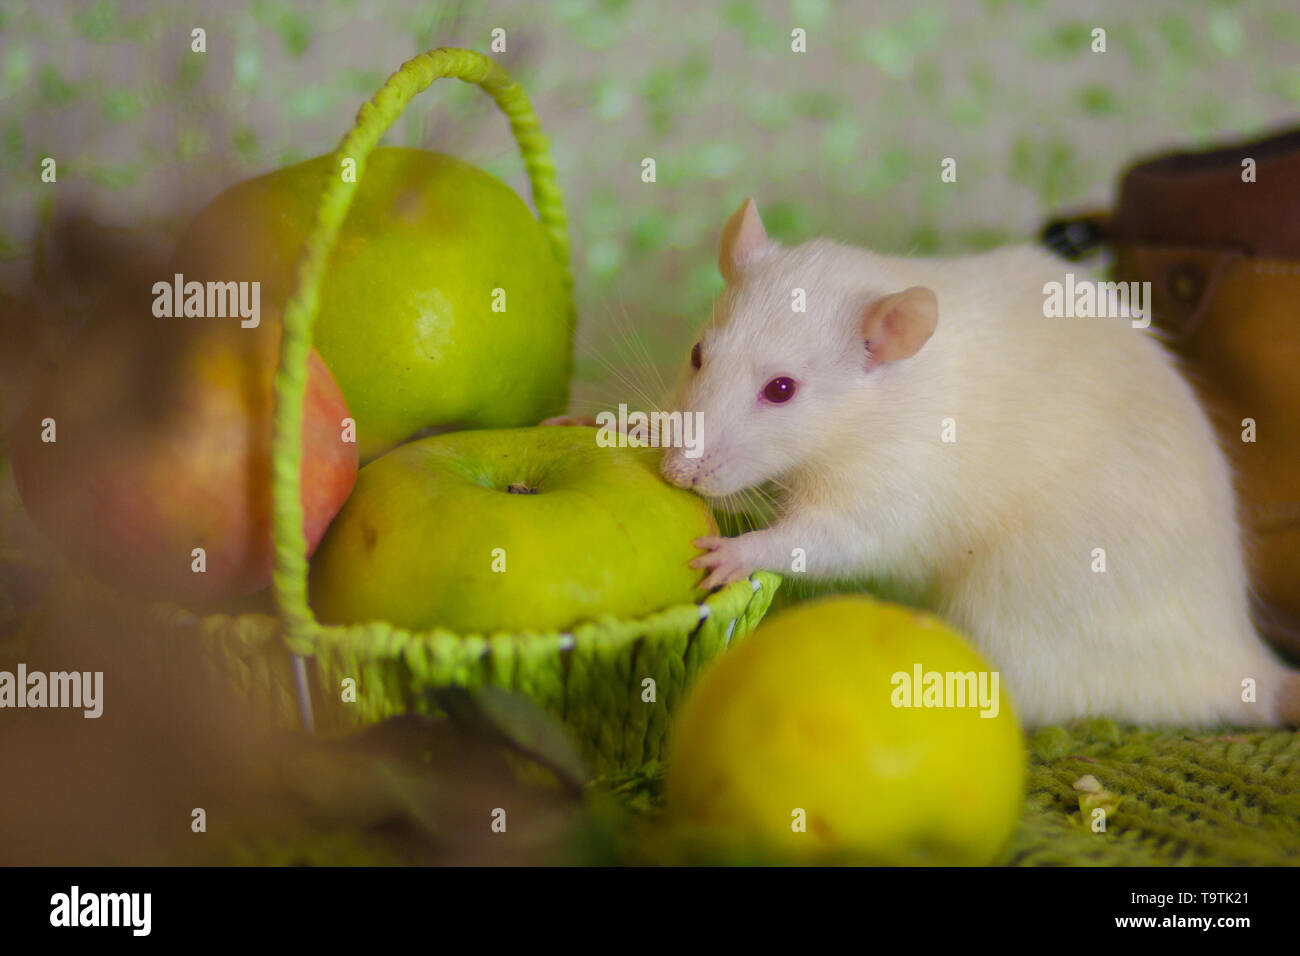 Still life with apples. White rat with green apples. Mouse with fruit in the basket. Beautiful decorative rodent. - Stock Image